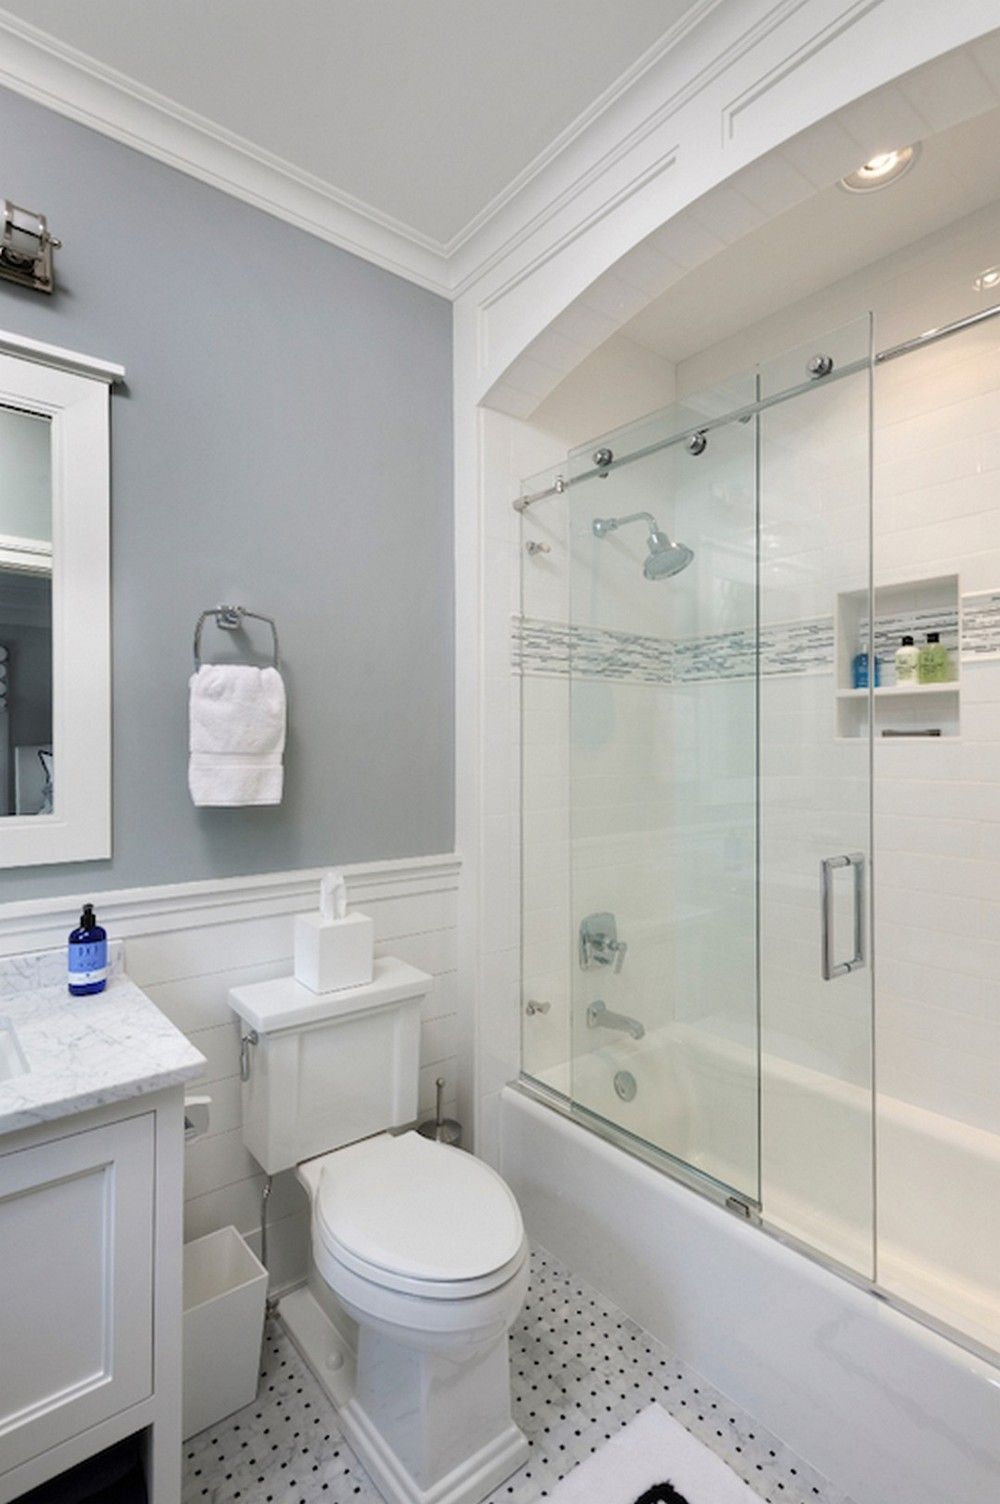 Bathroom Design Tips 28 Design Tips To Make A Small Bathroom Better  Small Bathroom